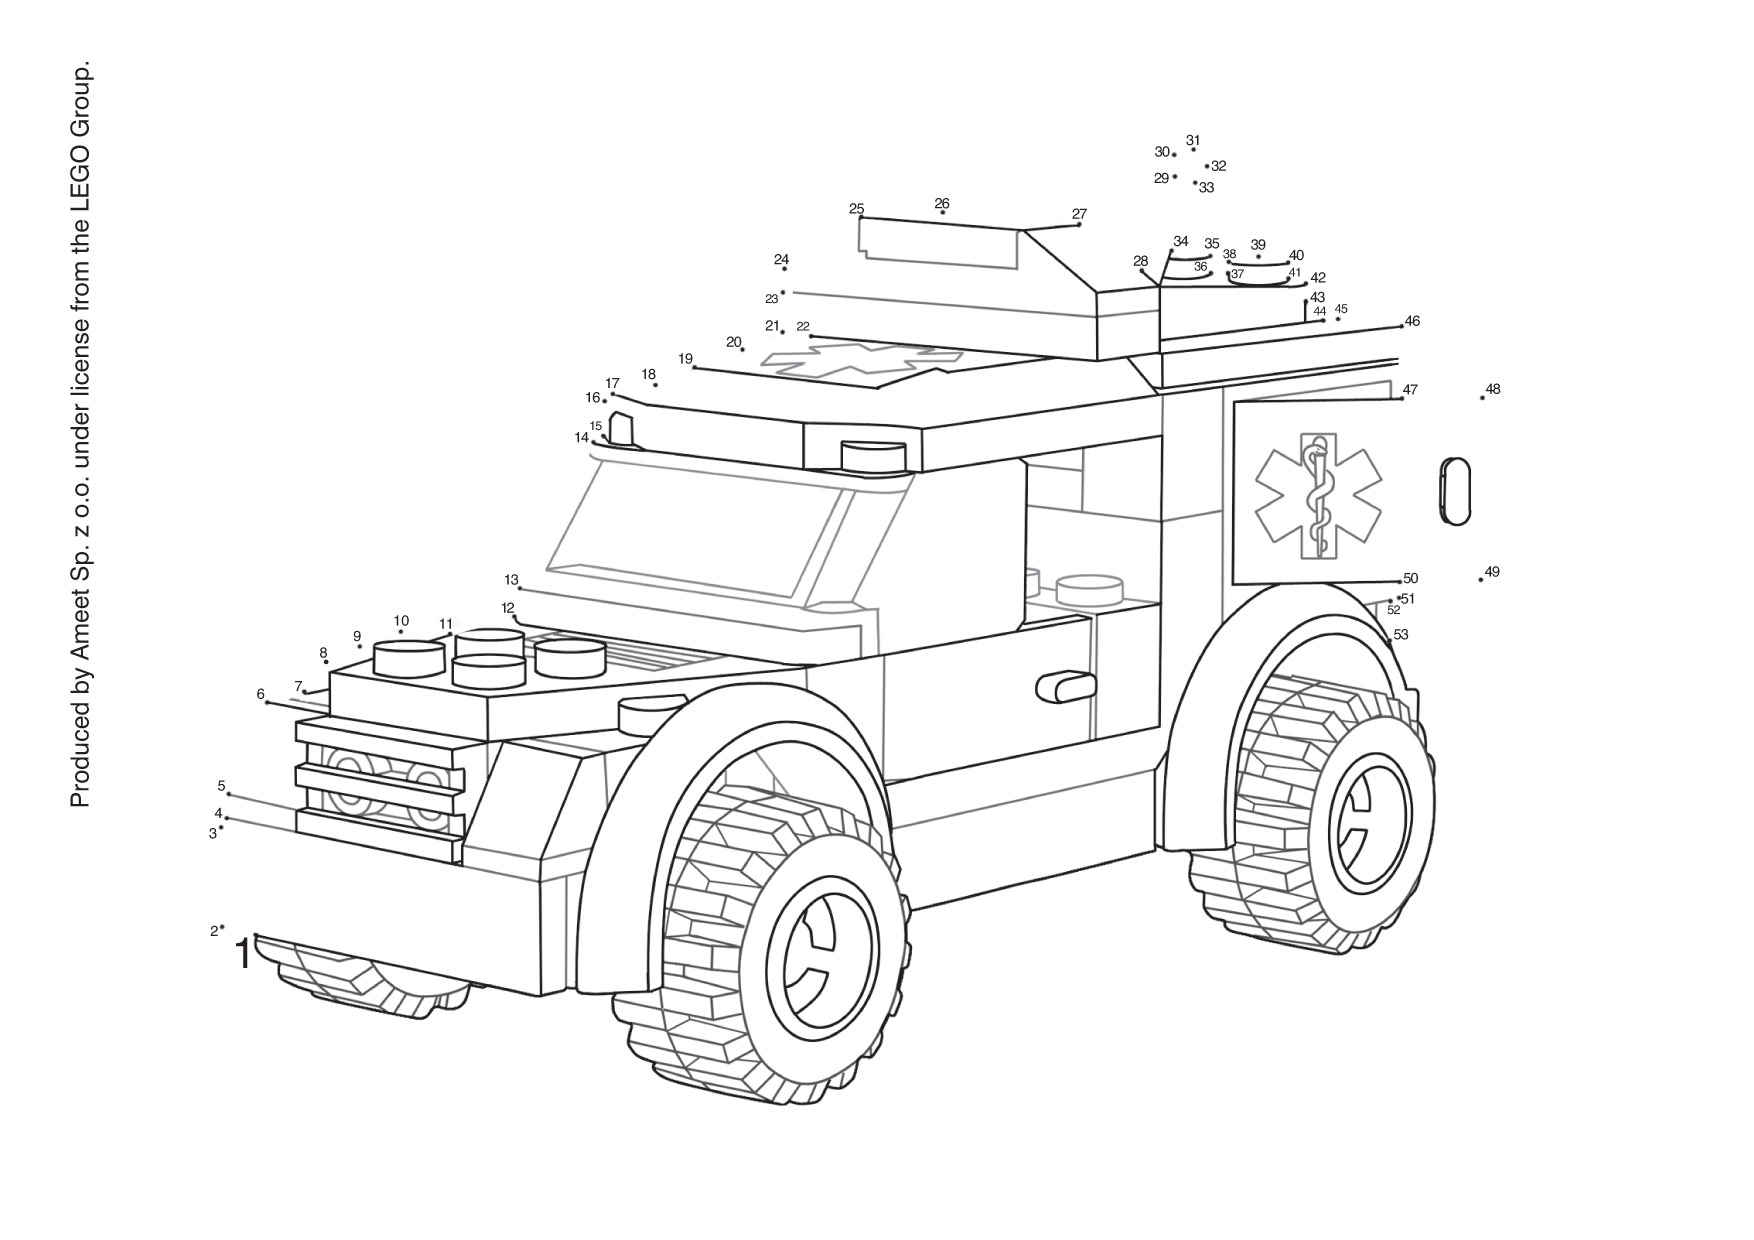 Free coloring pages of lego cars